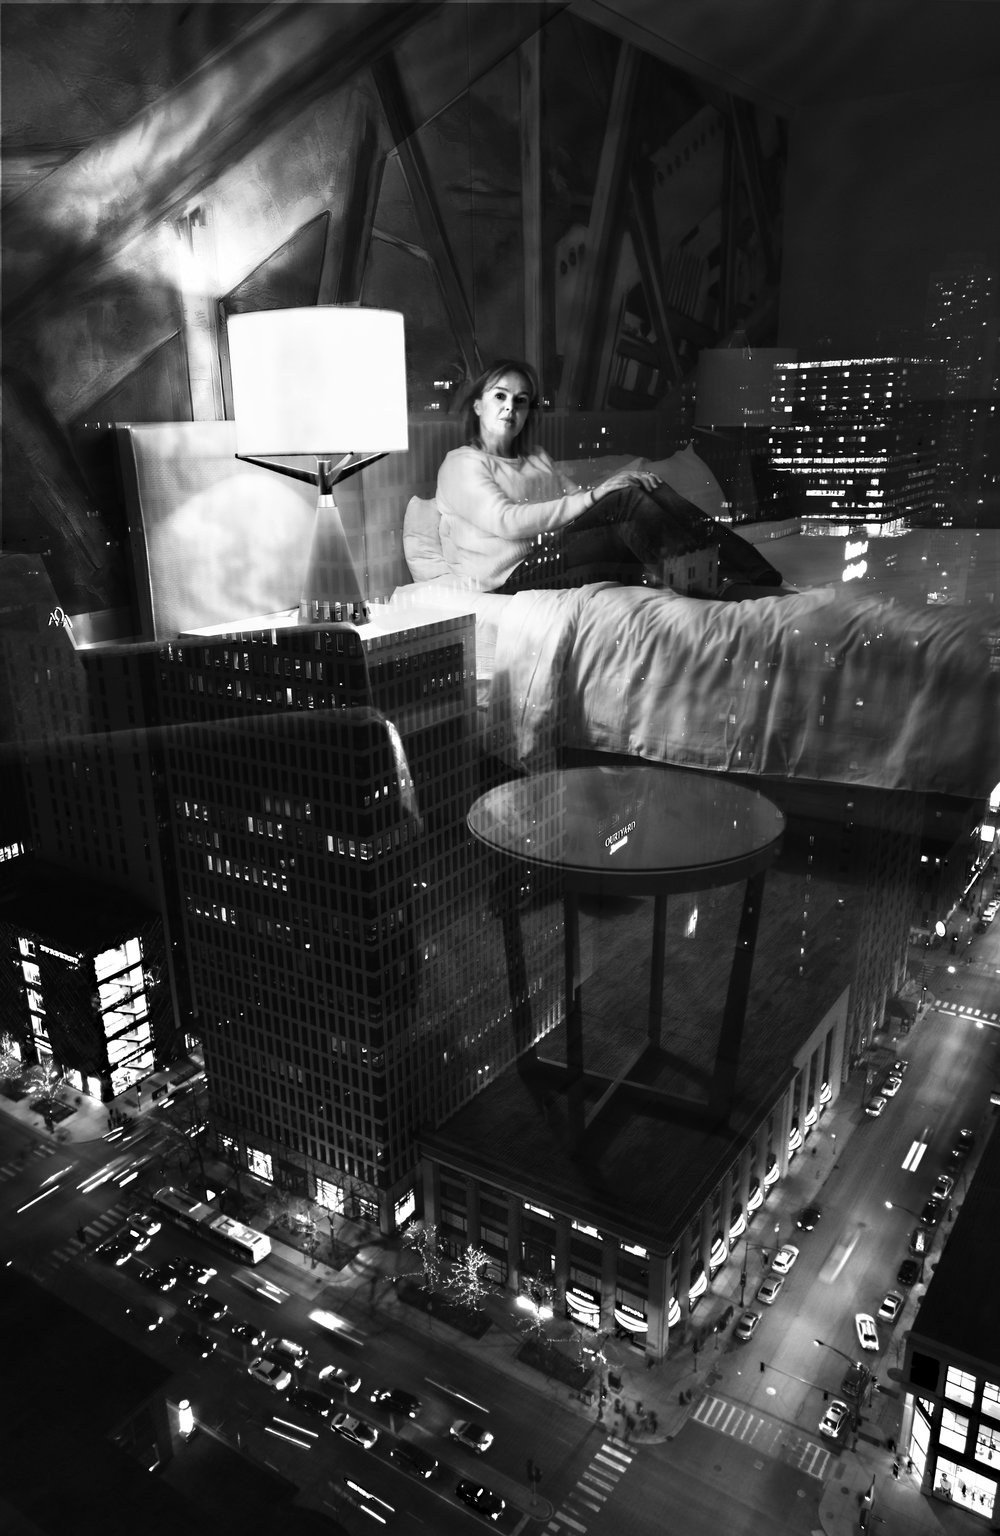 Alison Swinburne, Lonely in Chicago